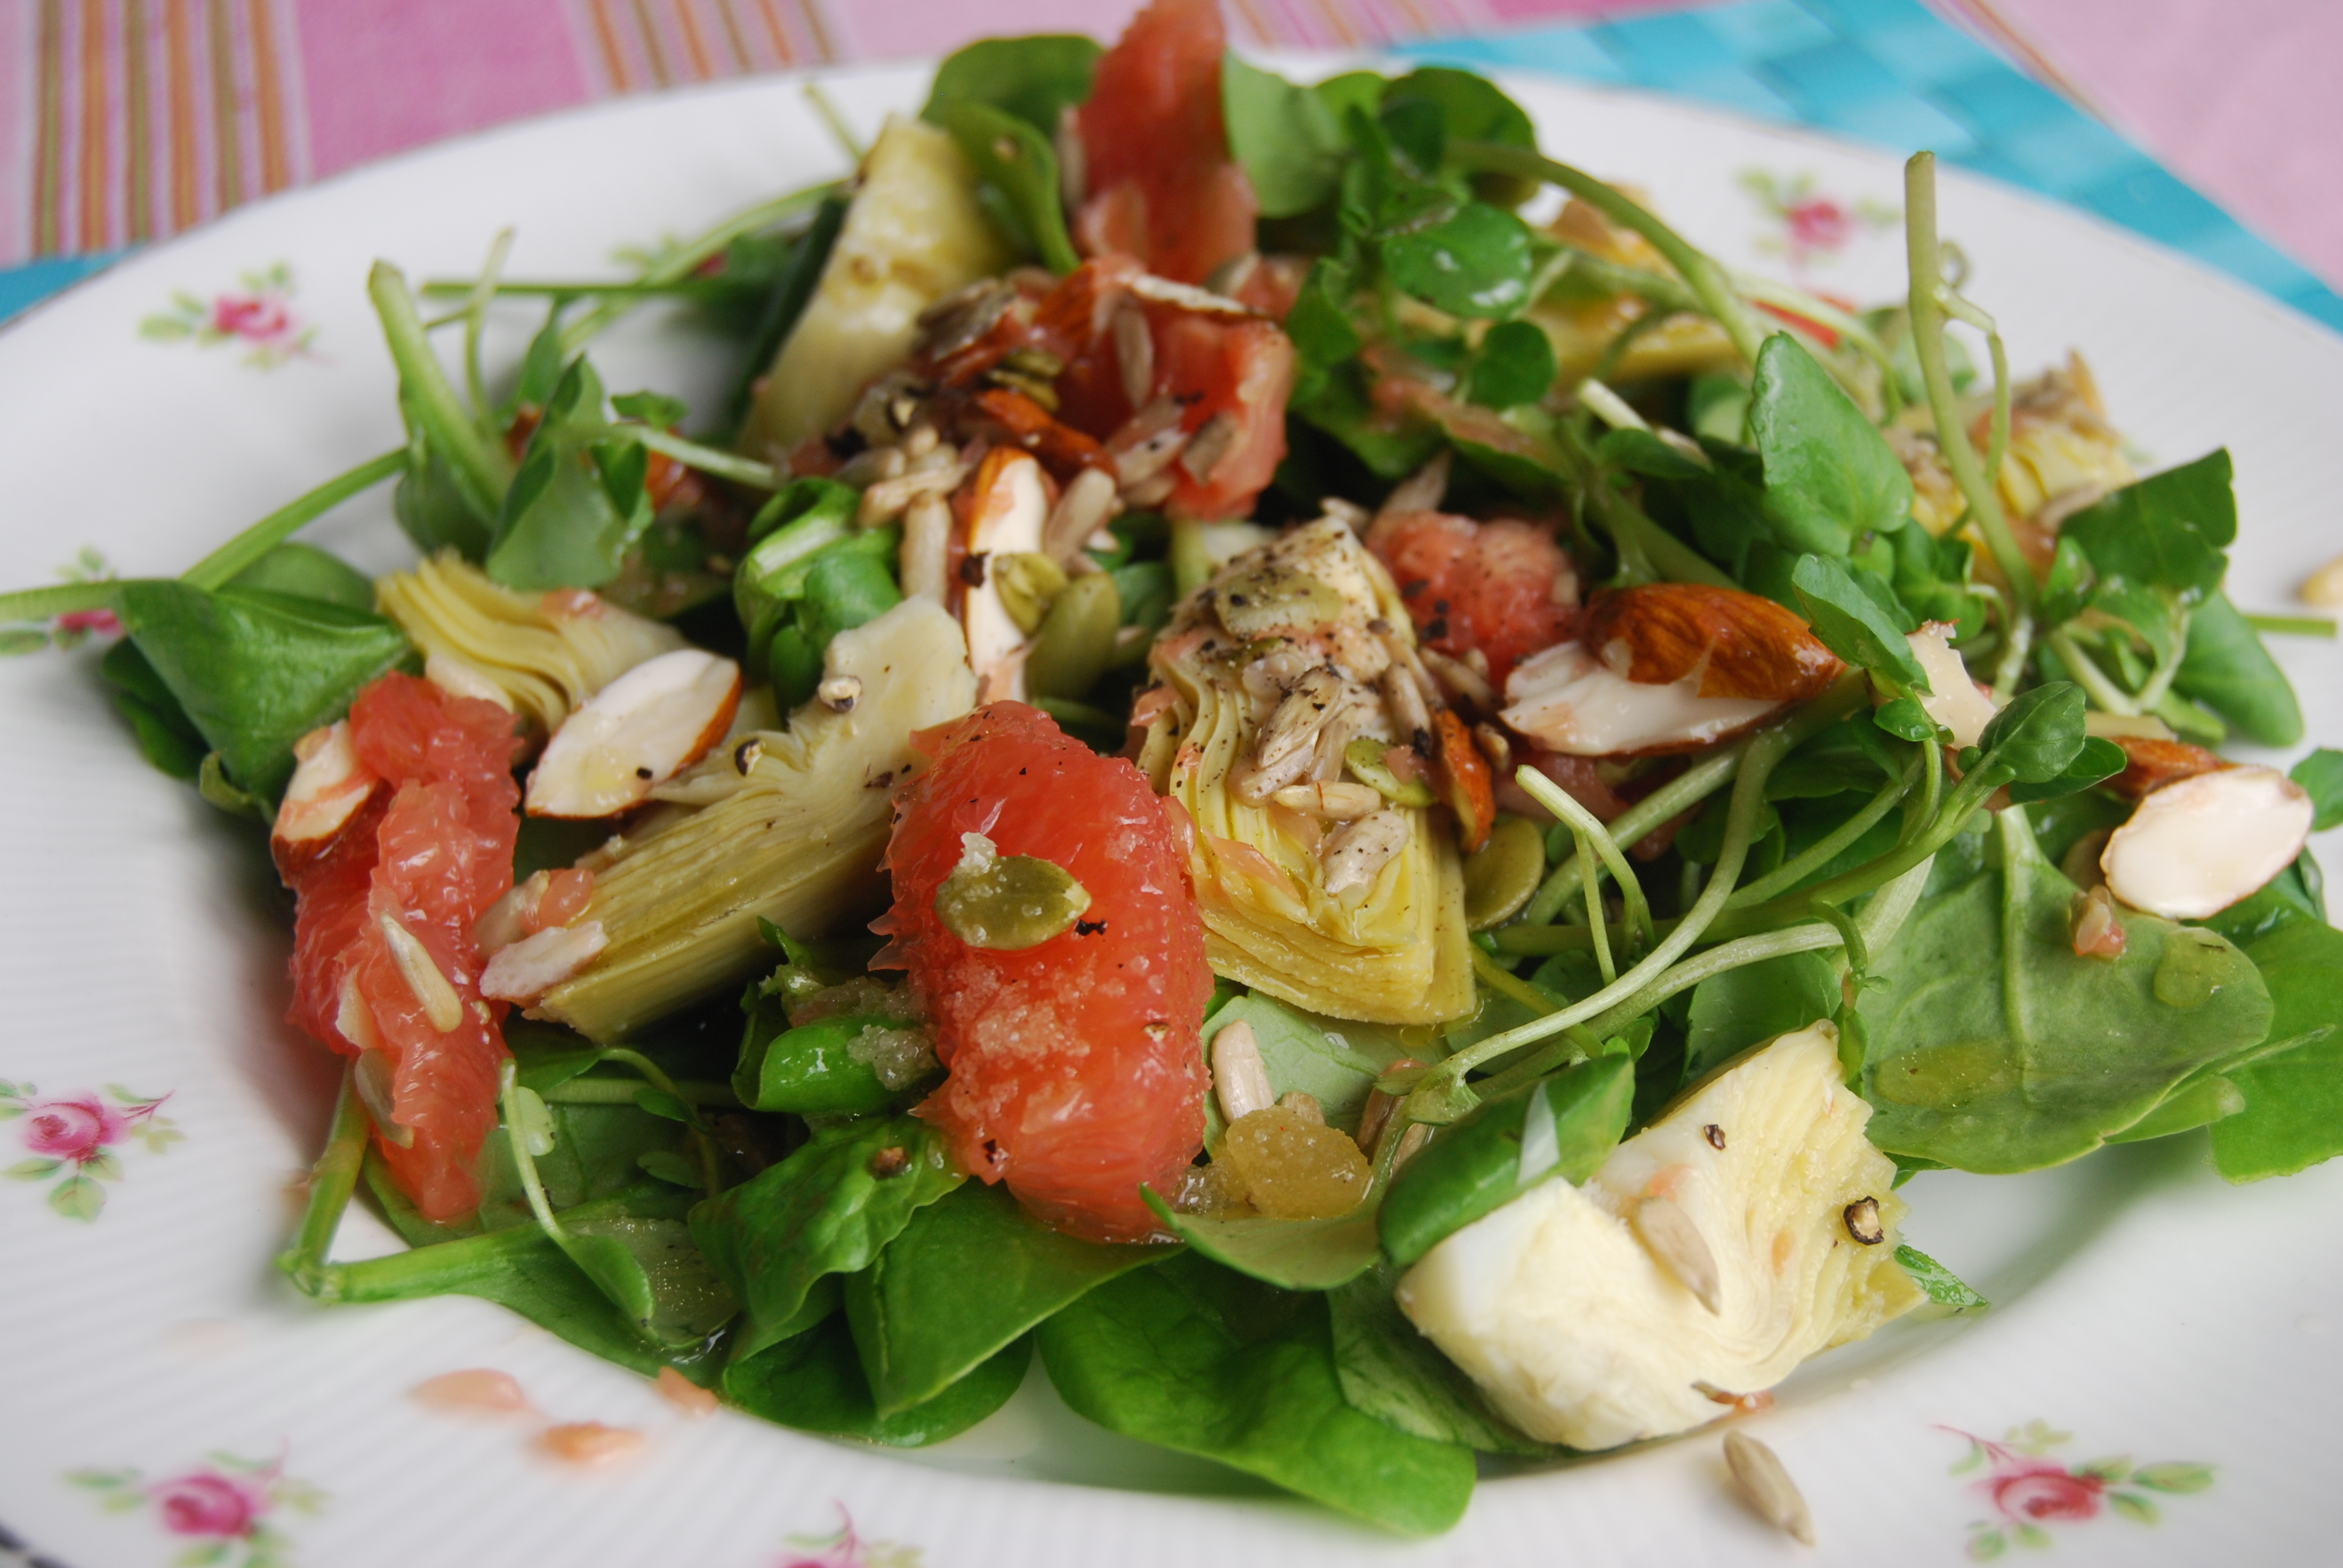 Globe artichoke and pink grapefruit salad jamie oliver recipe there forumfinder Gallery